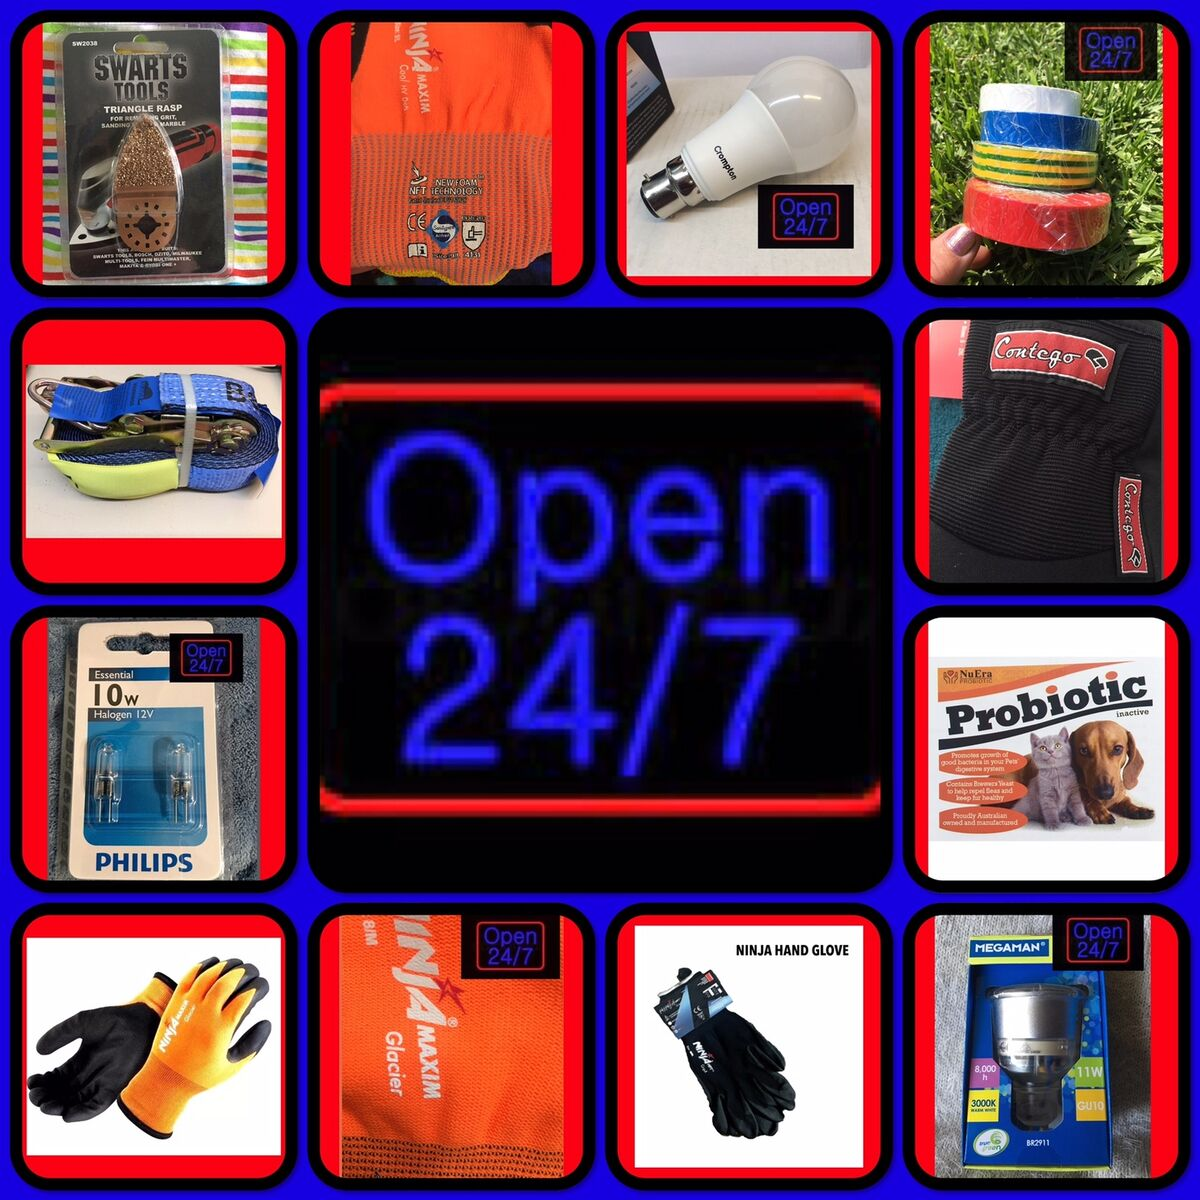 24/7 Trading Post We Buy & Sell